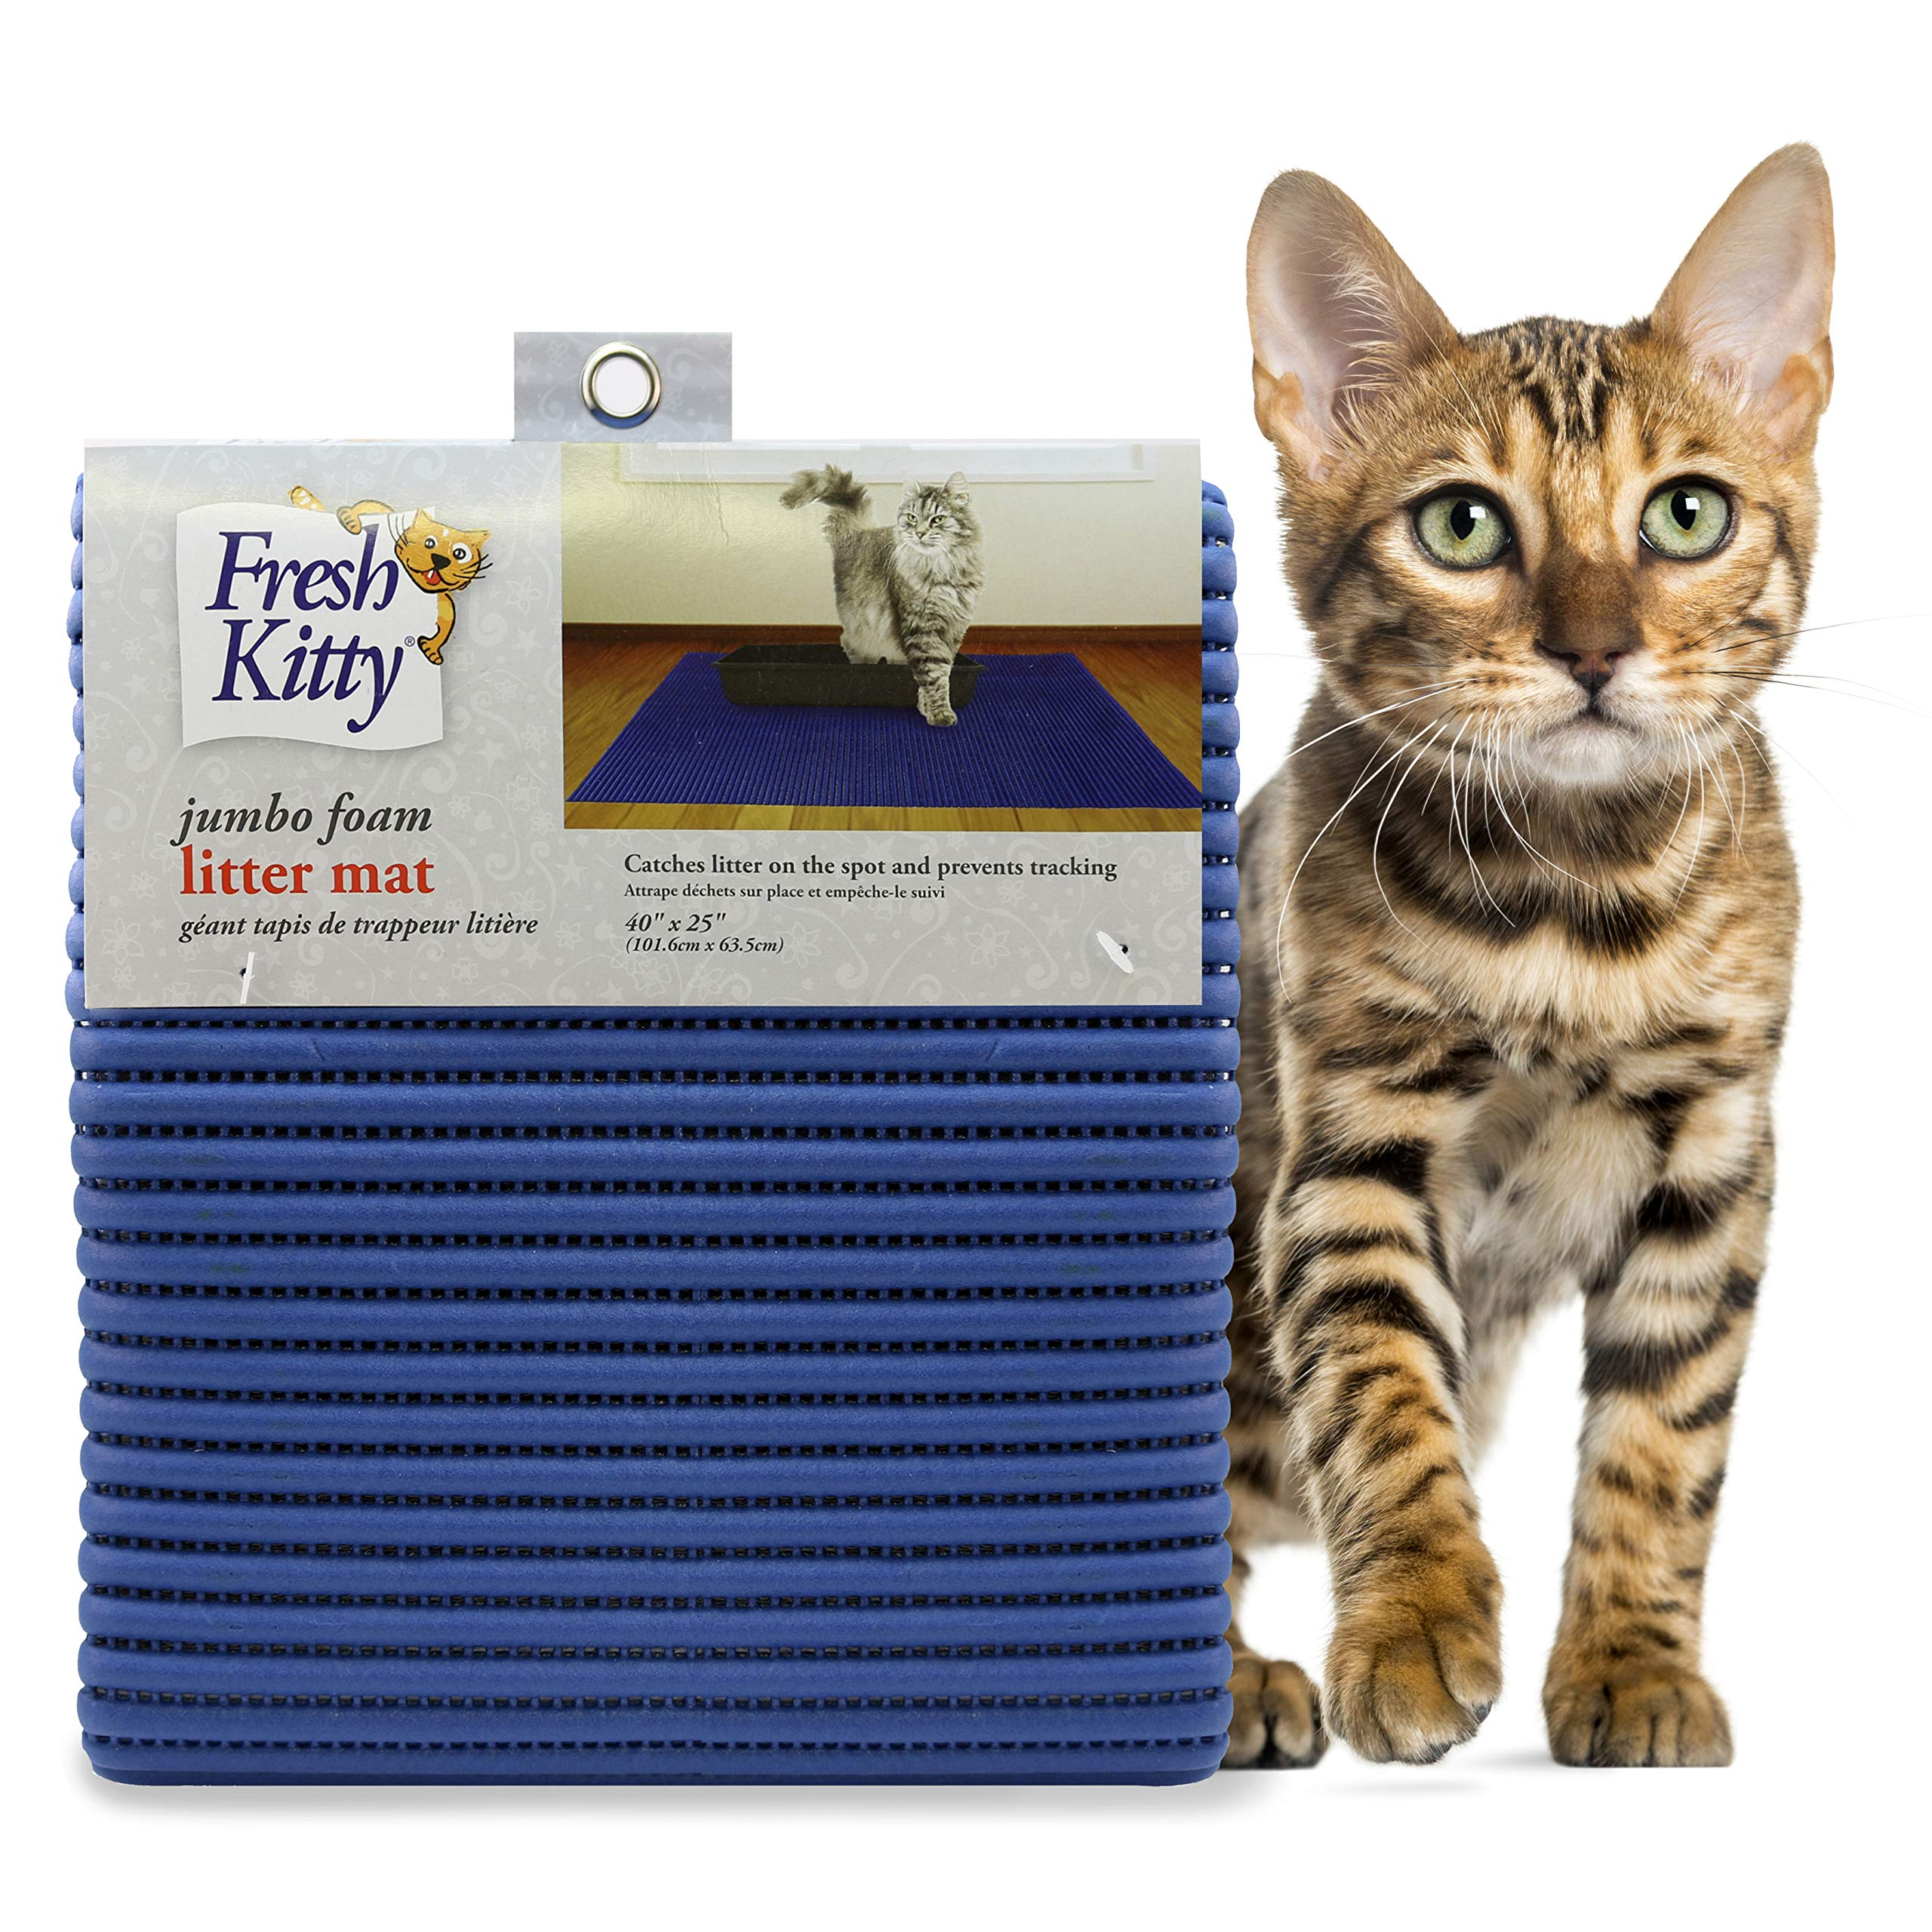 Fresh Kitty Durable XL Jumbo Foam Litter Mat – Phthalate and BPA Free, Water Resistant, Traps Litter from Box, Scatter Control, Easy Clean Mats – Blue (9032)